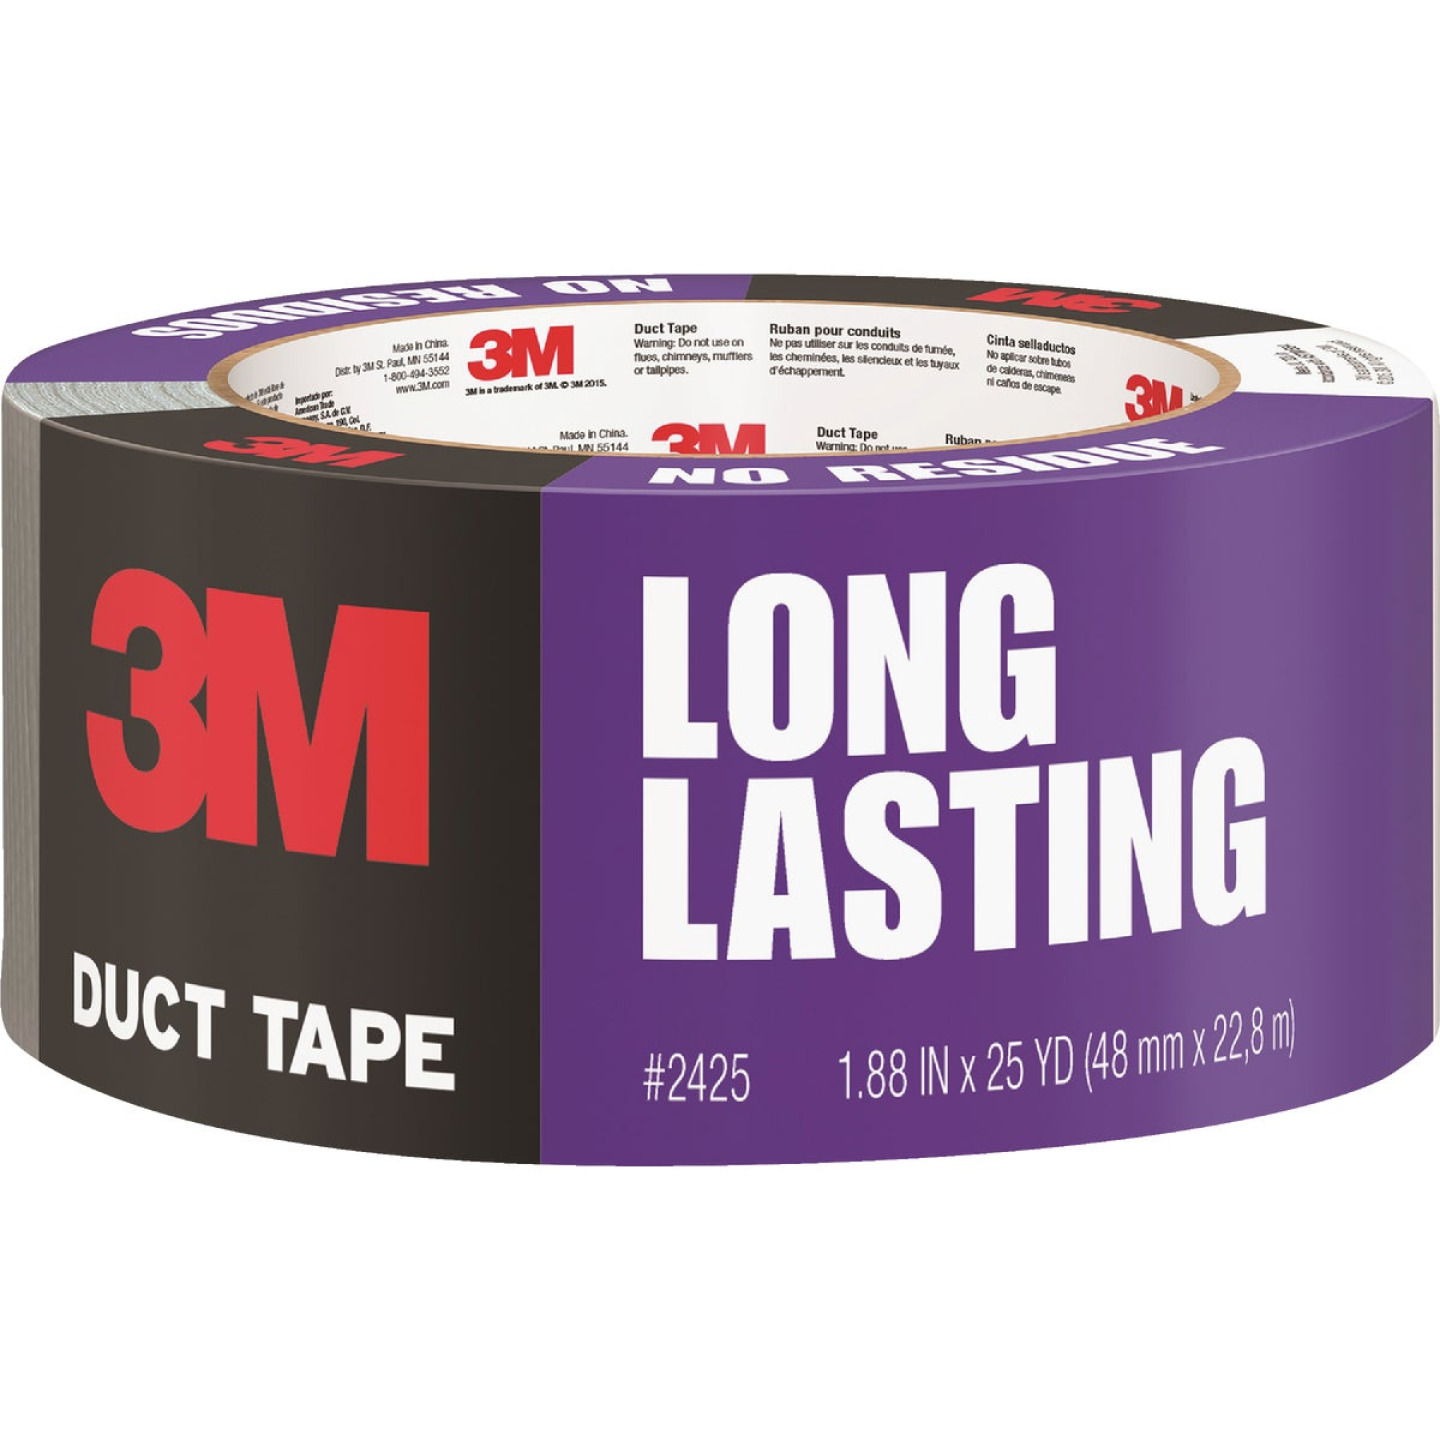 3M 1.88 In. x 25 Yd. Long Lasting Duct Tape, Gray Image 1